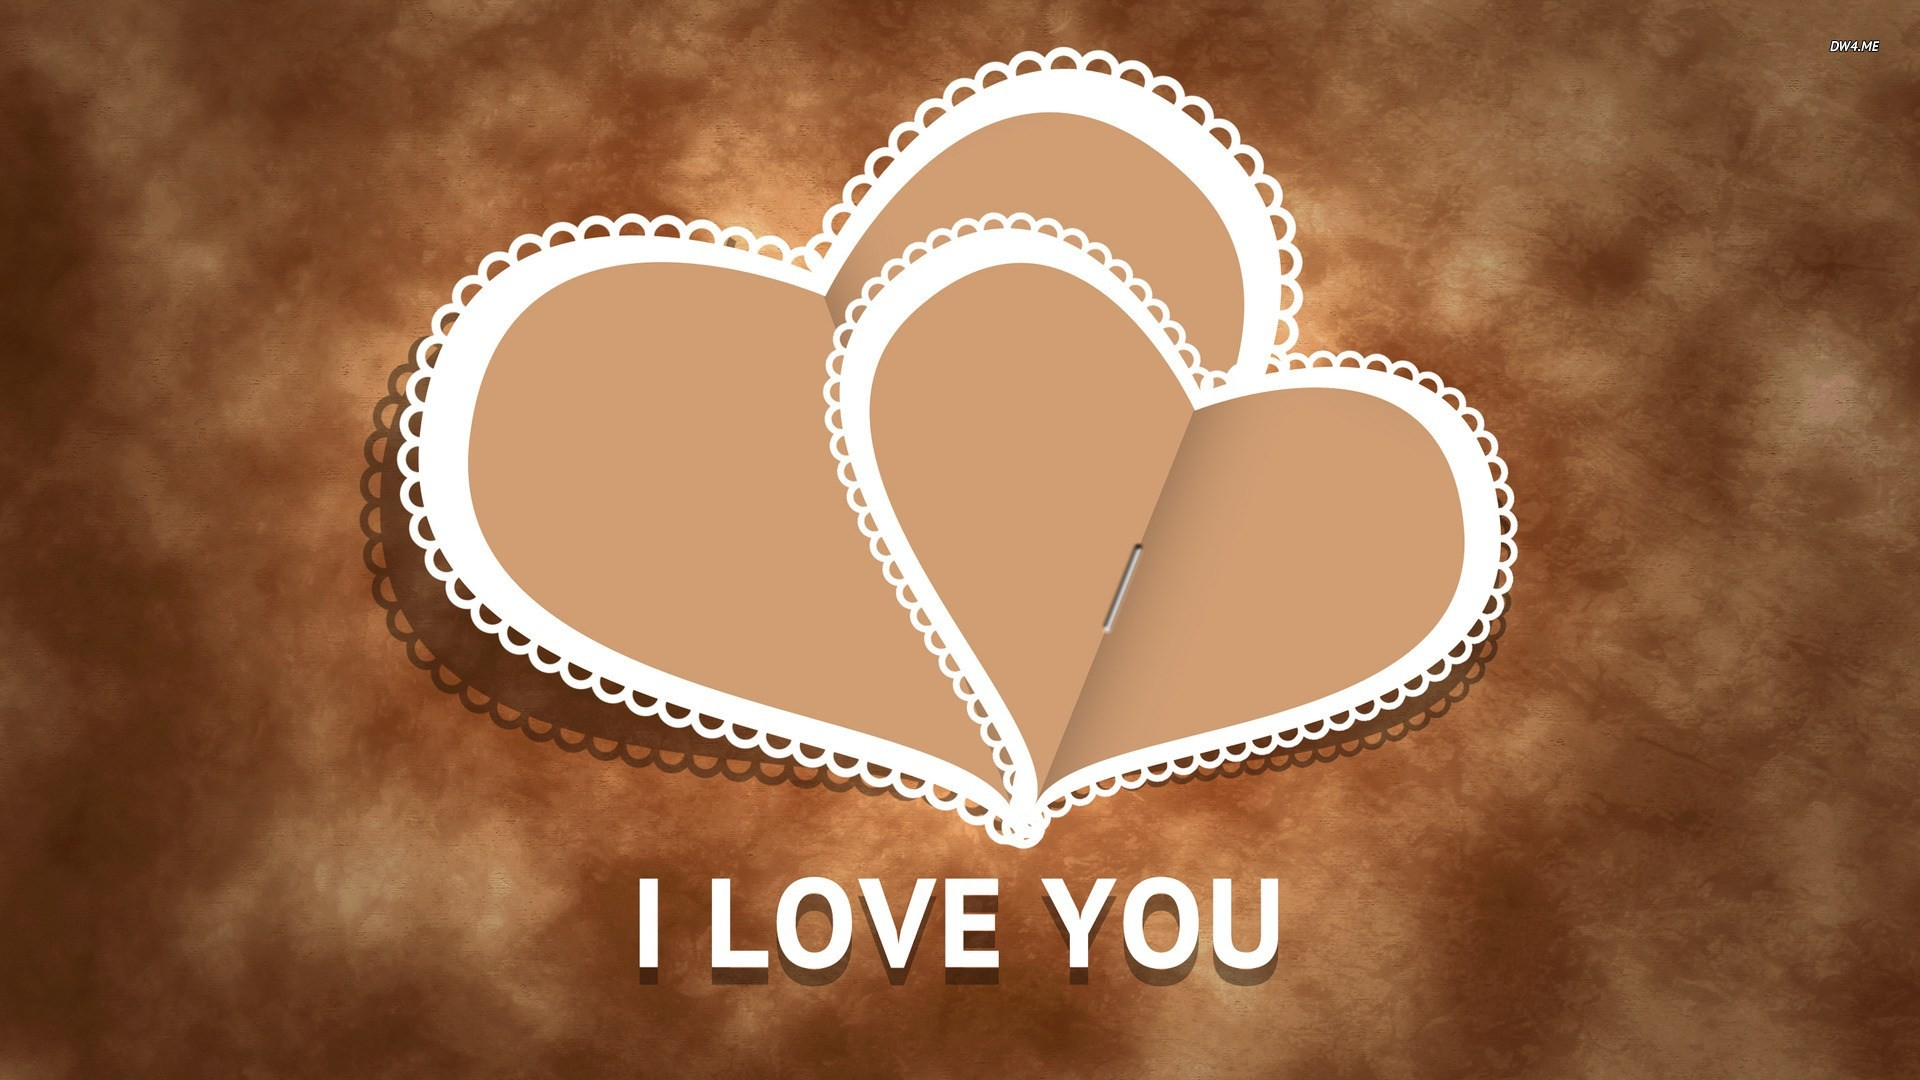 I Love You And I Miss You Wallpapers Data Src Download Wallpaper 1920x1080 Download Hd Wallpaper Wallpapertip